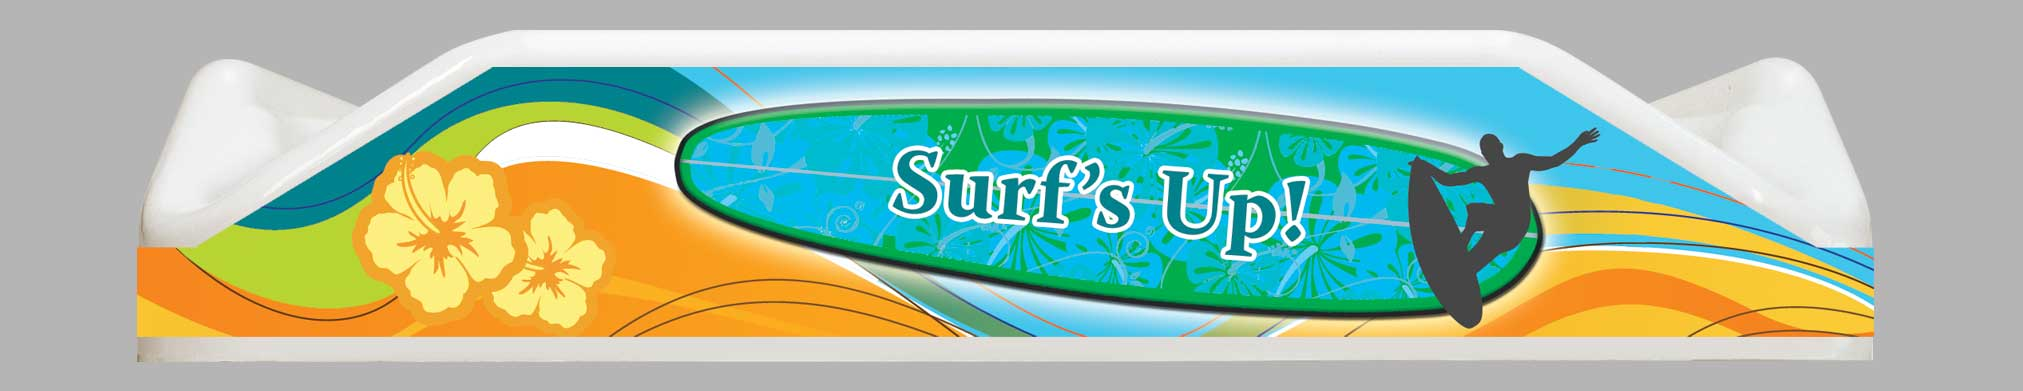 Surf's Up #1